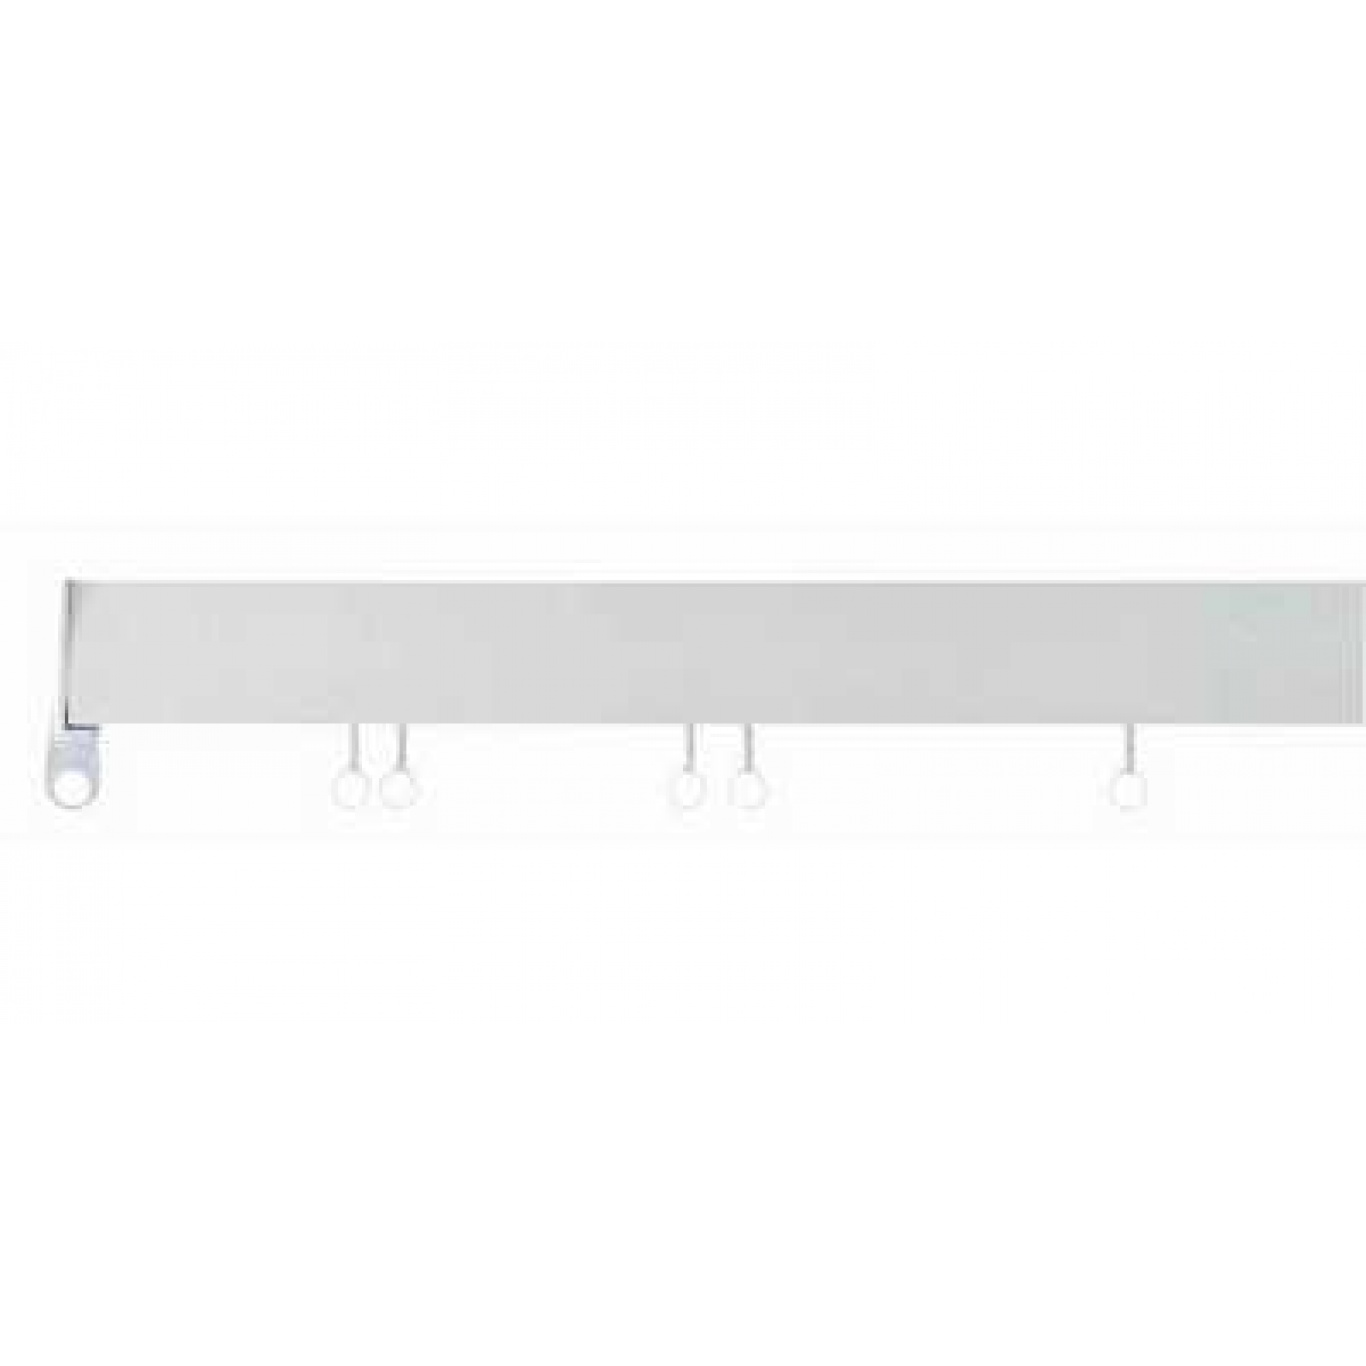 Image of Swish Deluxe White PVC Track 150cm